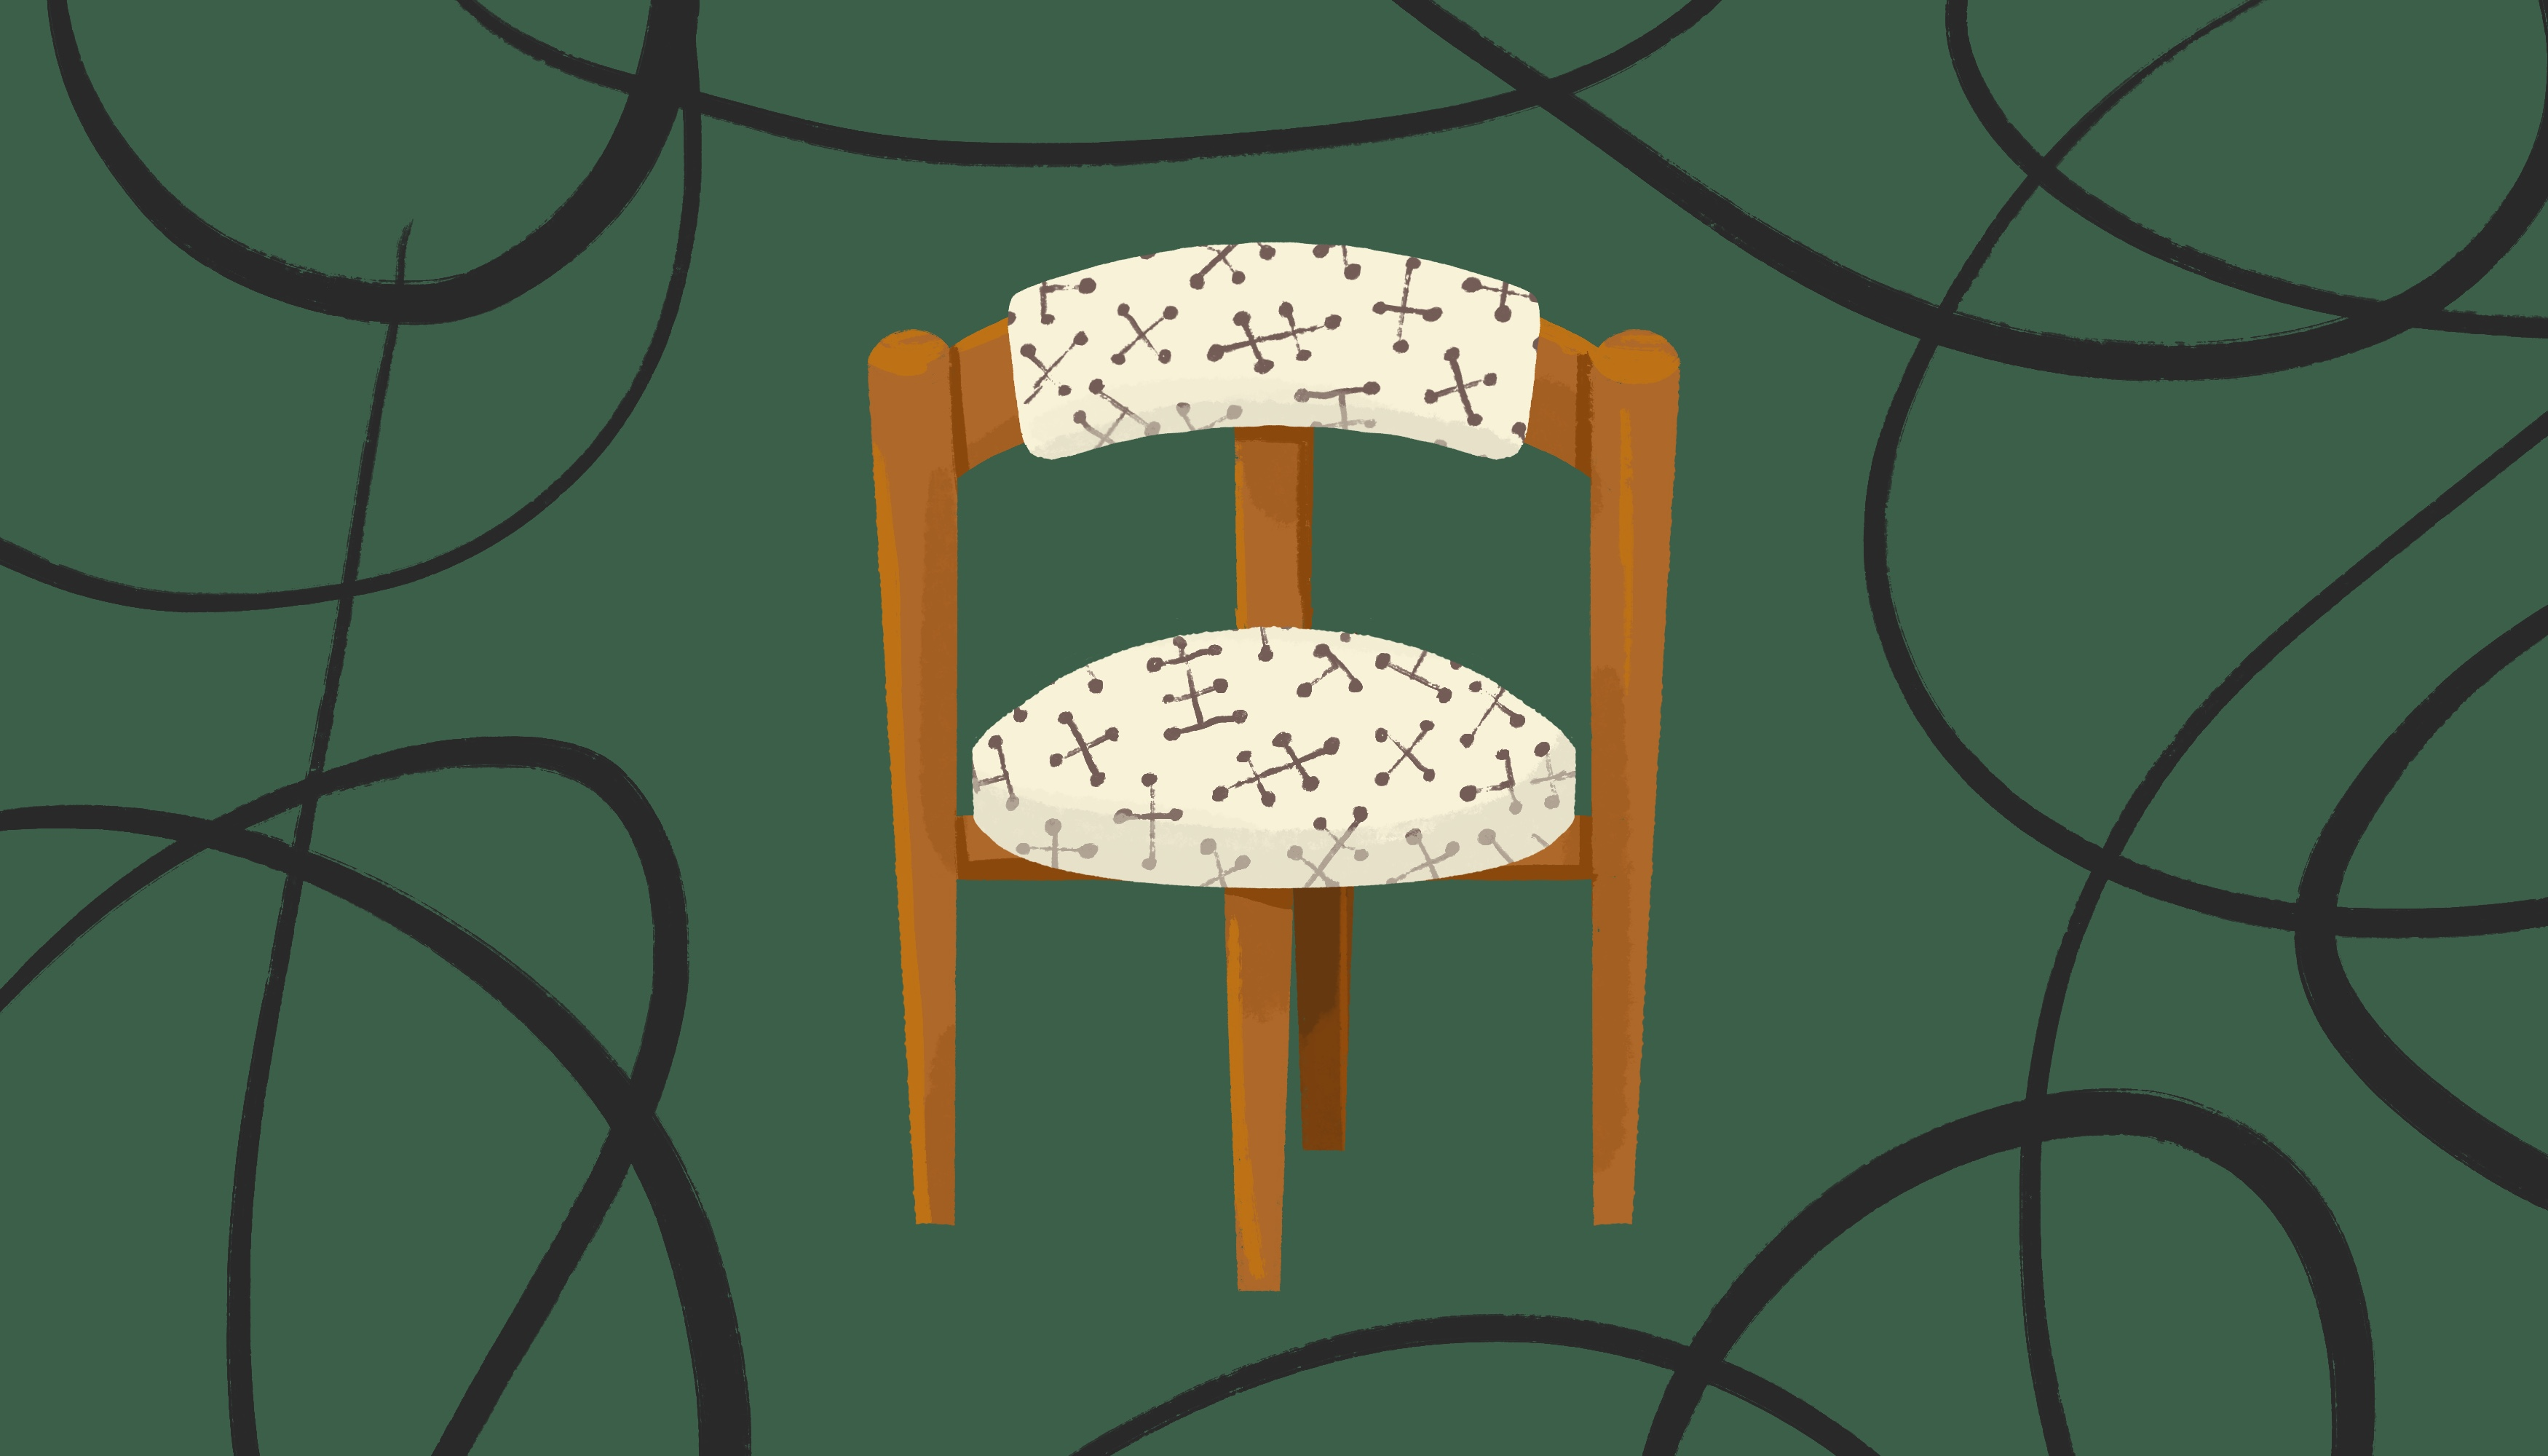 Illustration of a curved wooden chair with cream and black patterned upholstery, against a dark green background with black swirls.